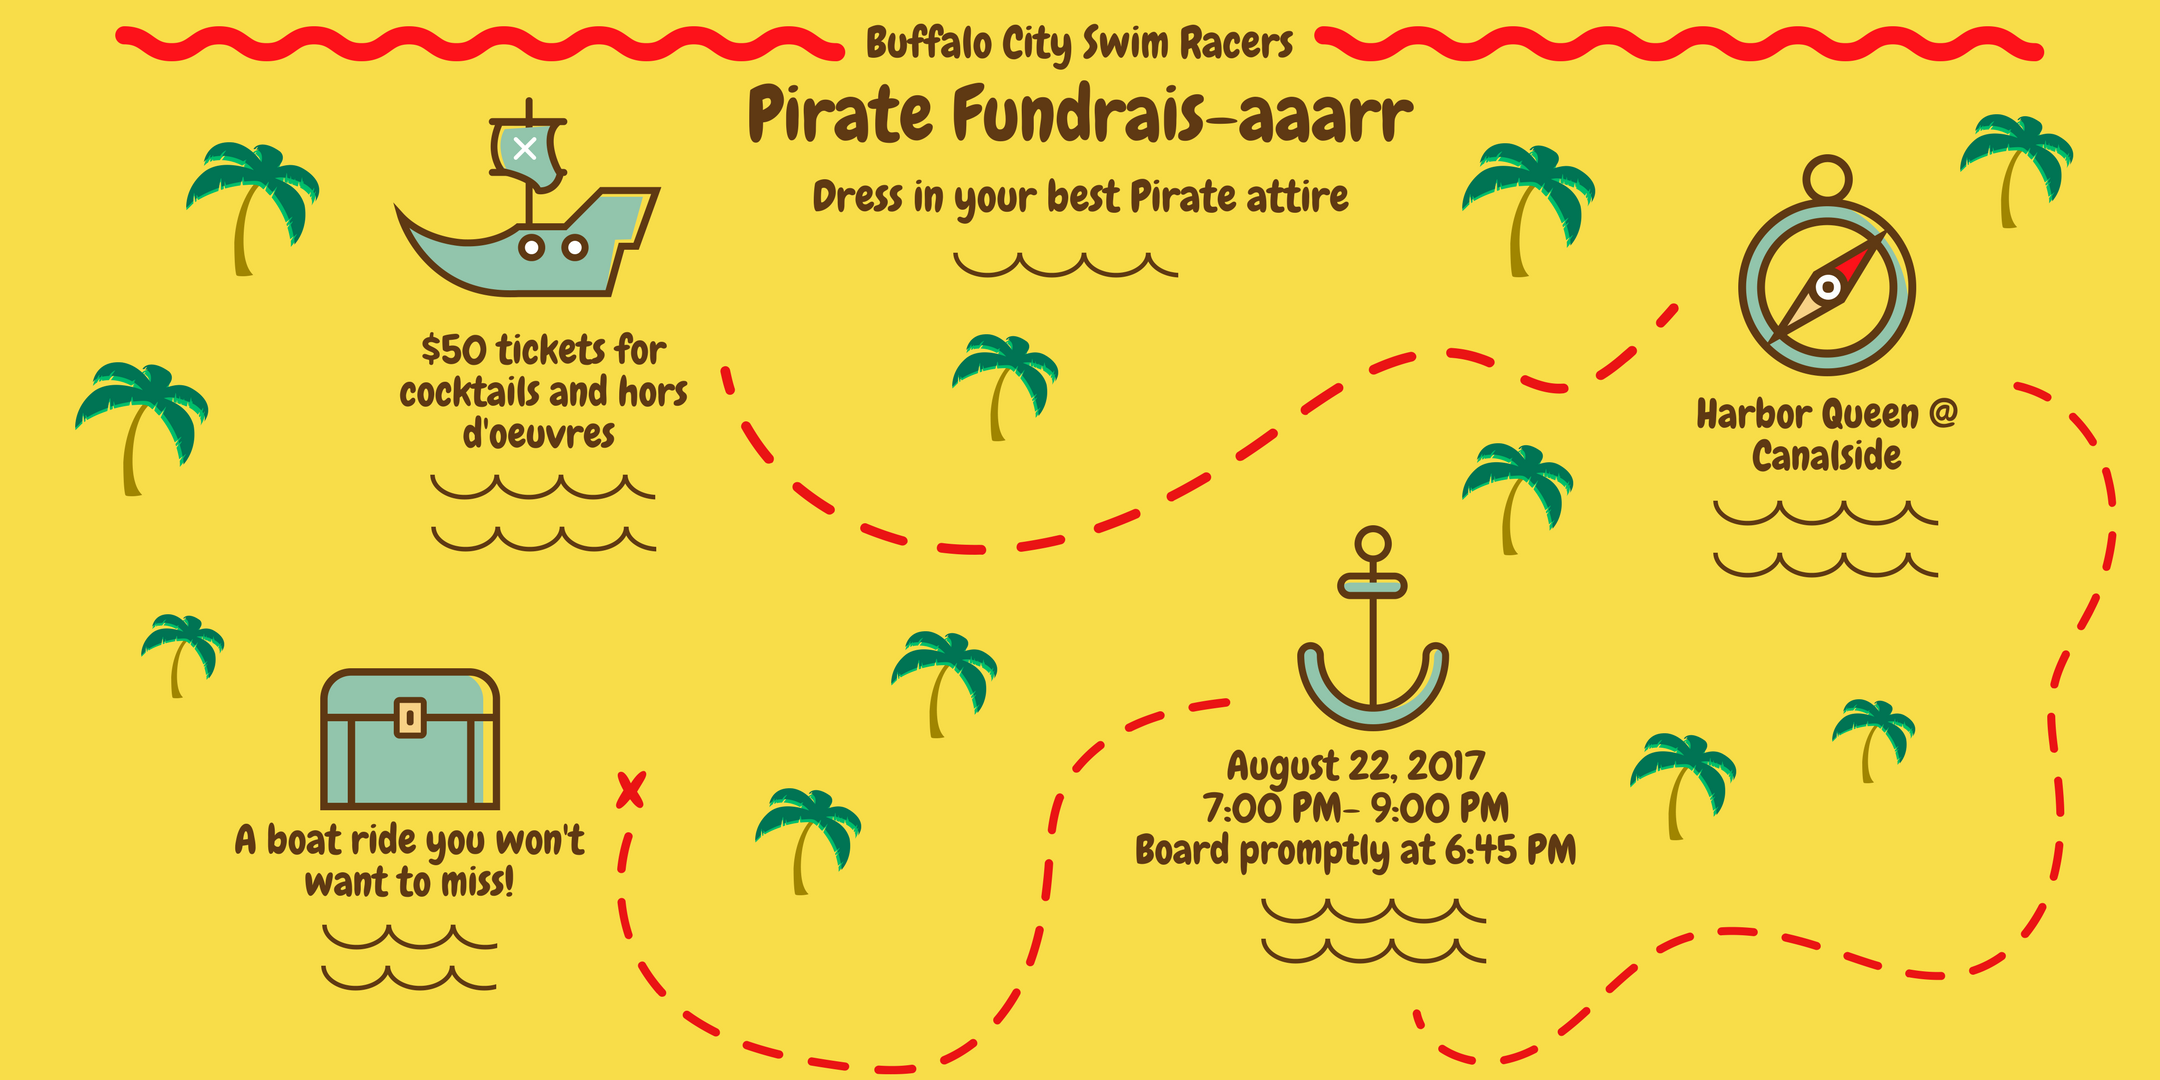 Pirate Fundrais-aaarr